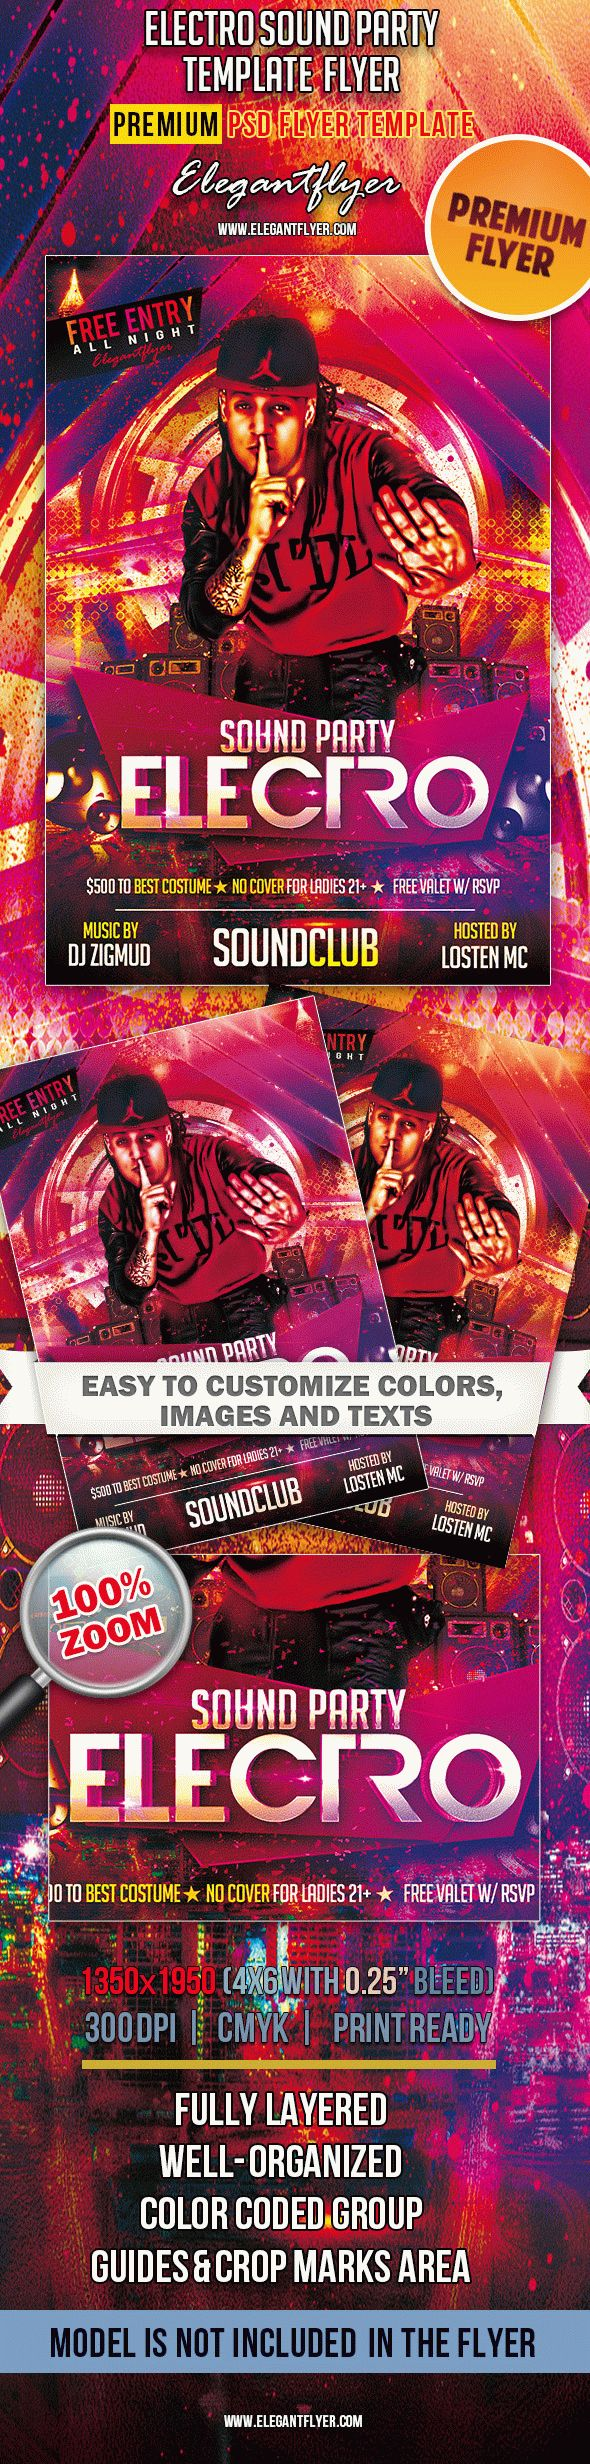 Poster for Electro Sound Party